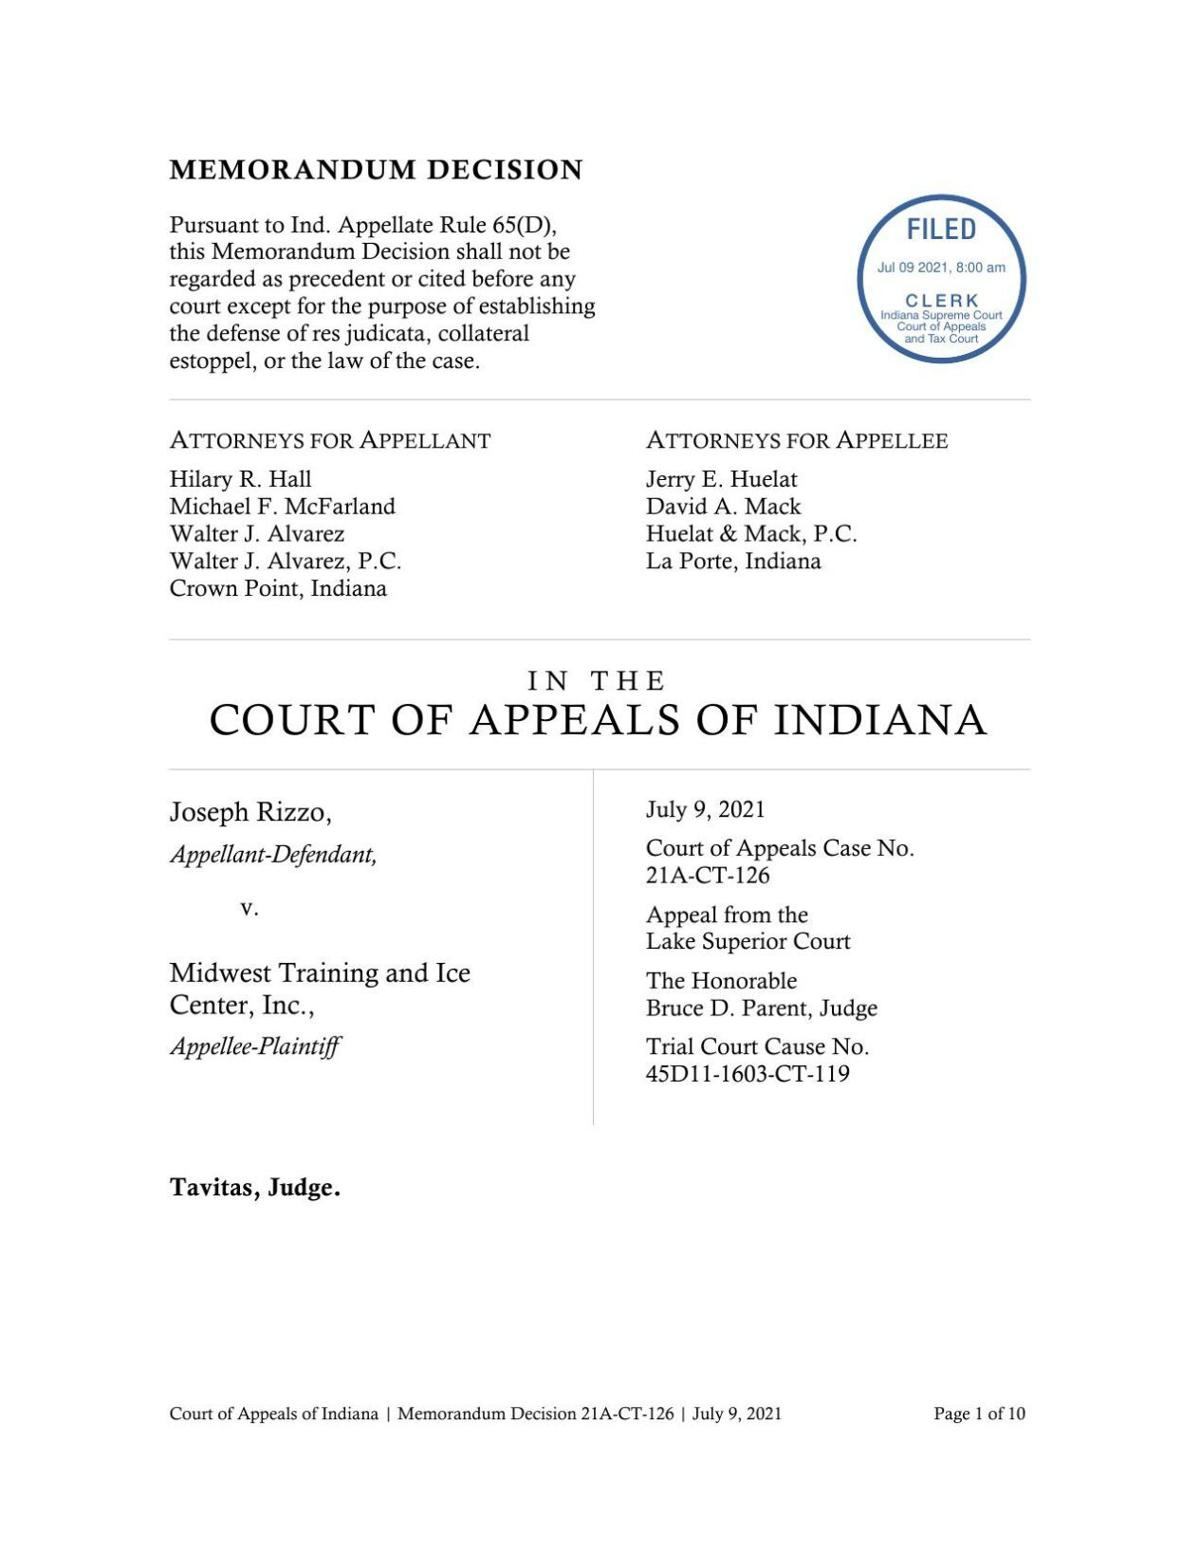 Rizzo v. Midwest Training and Ice Center ruling of Indiana Court of Appeals